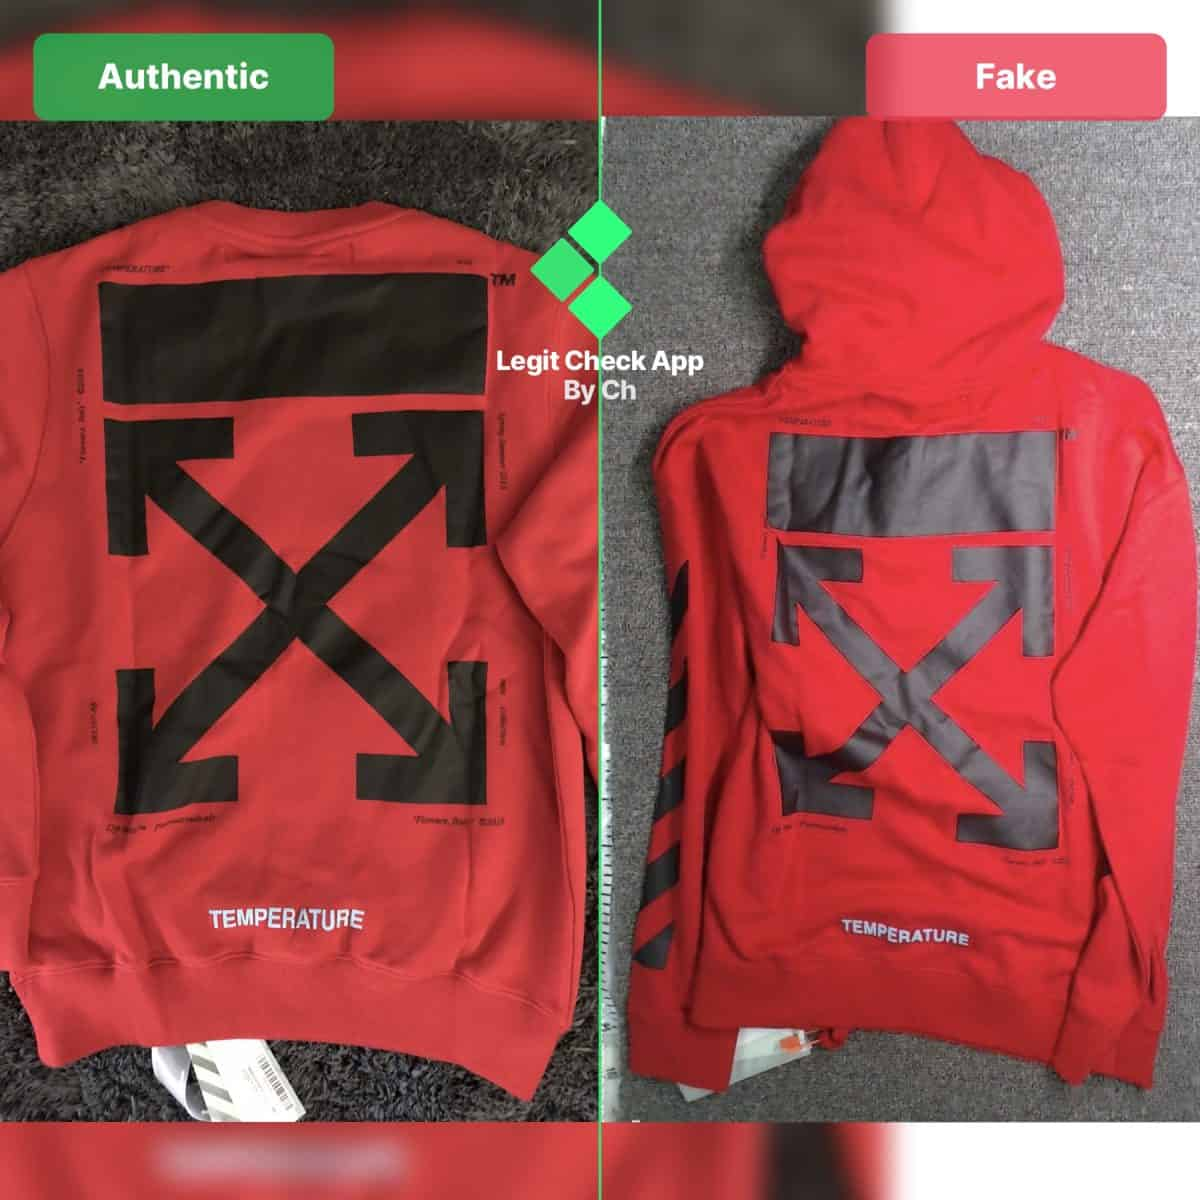 Off White Mona Lisa Fake Vs Real